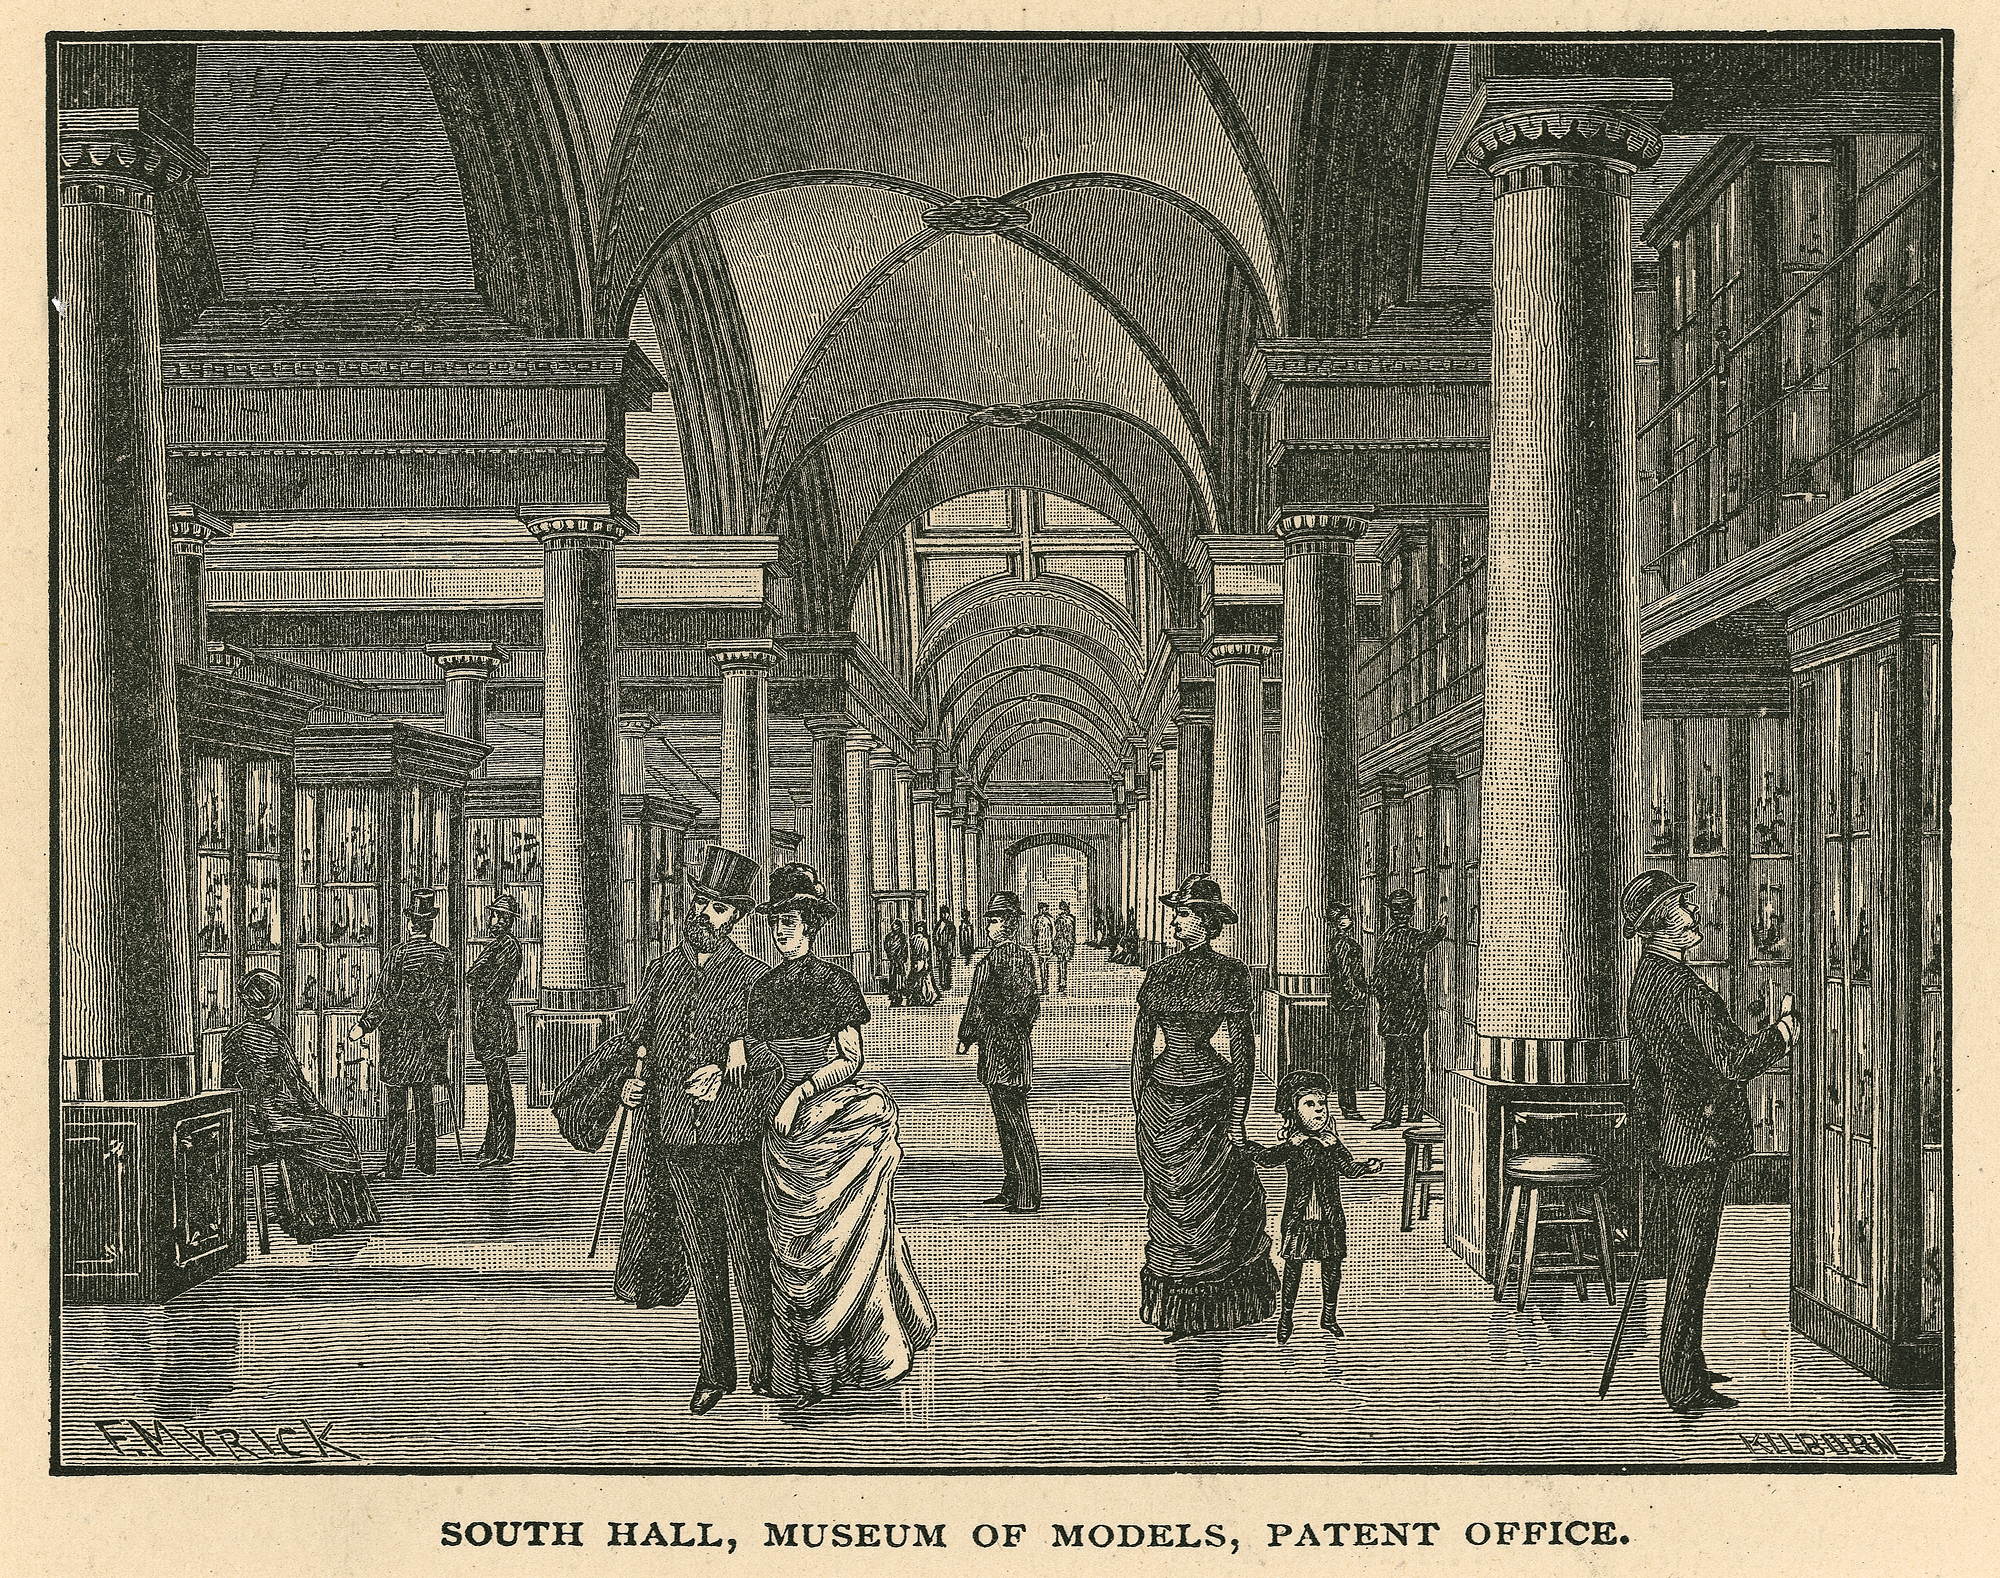 South Hall, Museum of Models, Patent Office. Illustration from Joseph West Moore, Picturesque Washington: Pen and Pencil Sketches, 1887, SI negative 2008-4988.